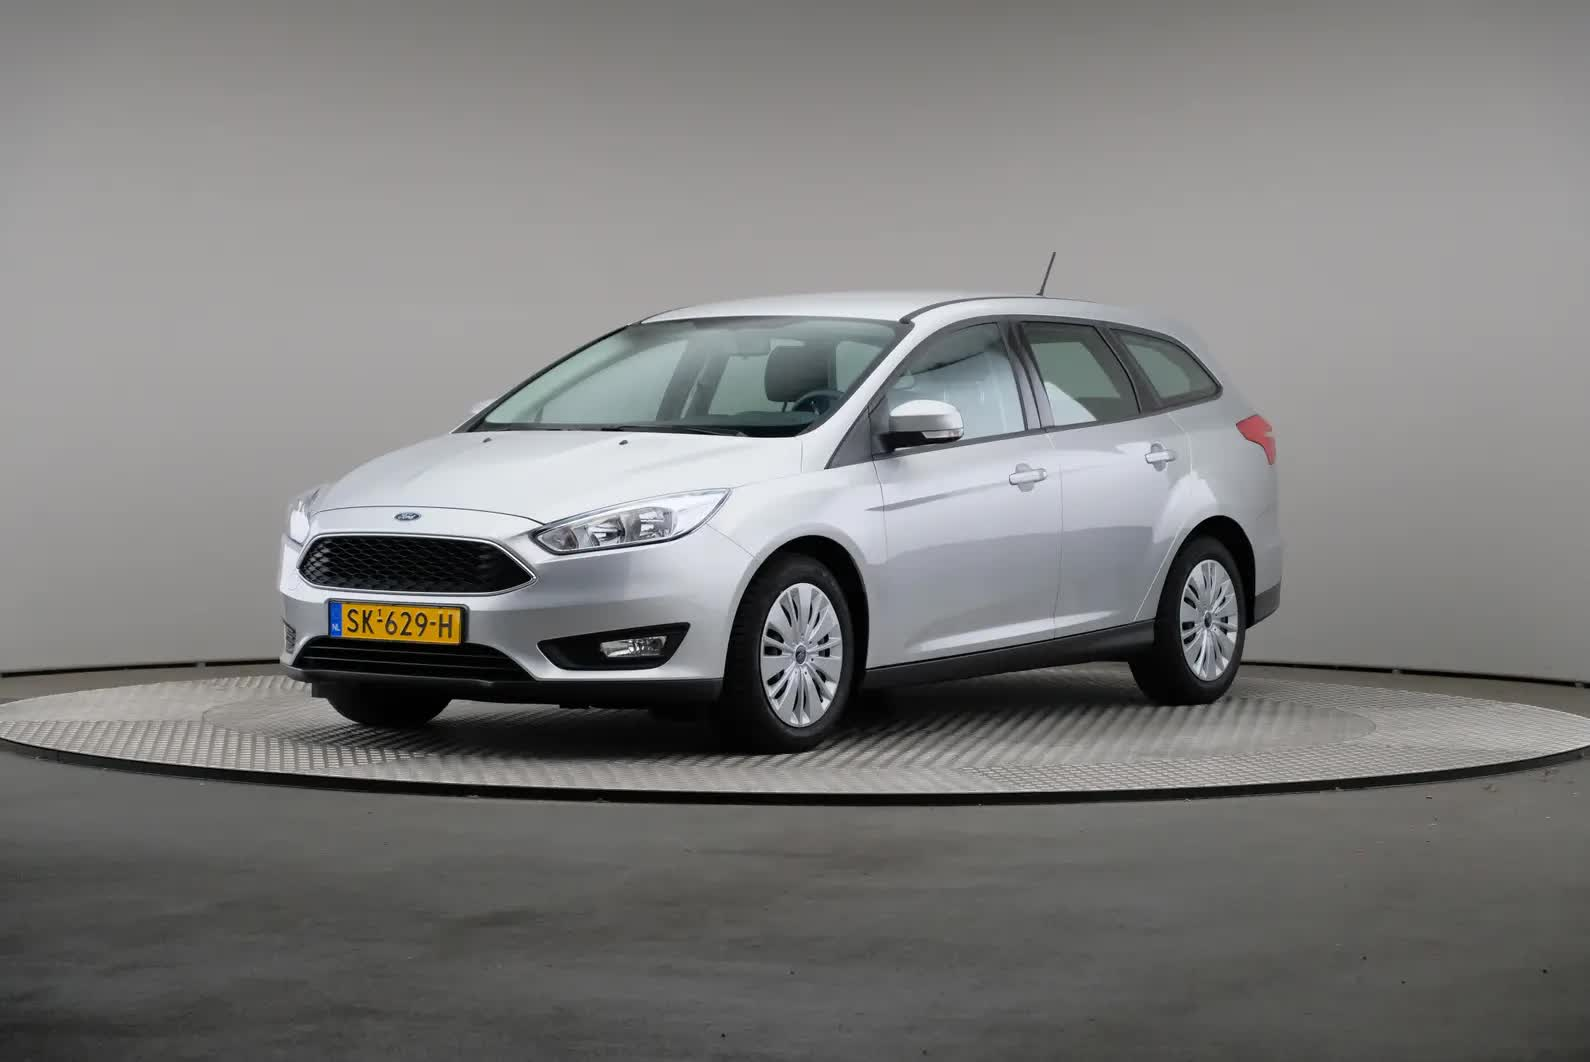 Ford Focus Wagon 1.0 EcoBoost 100pk Lease Edition 5d. (Kort contract, 12 maanden!)